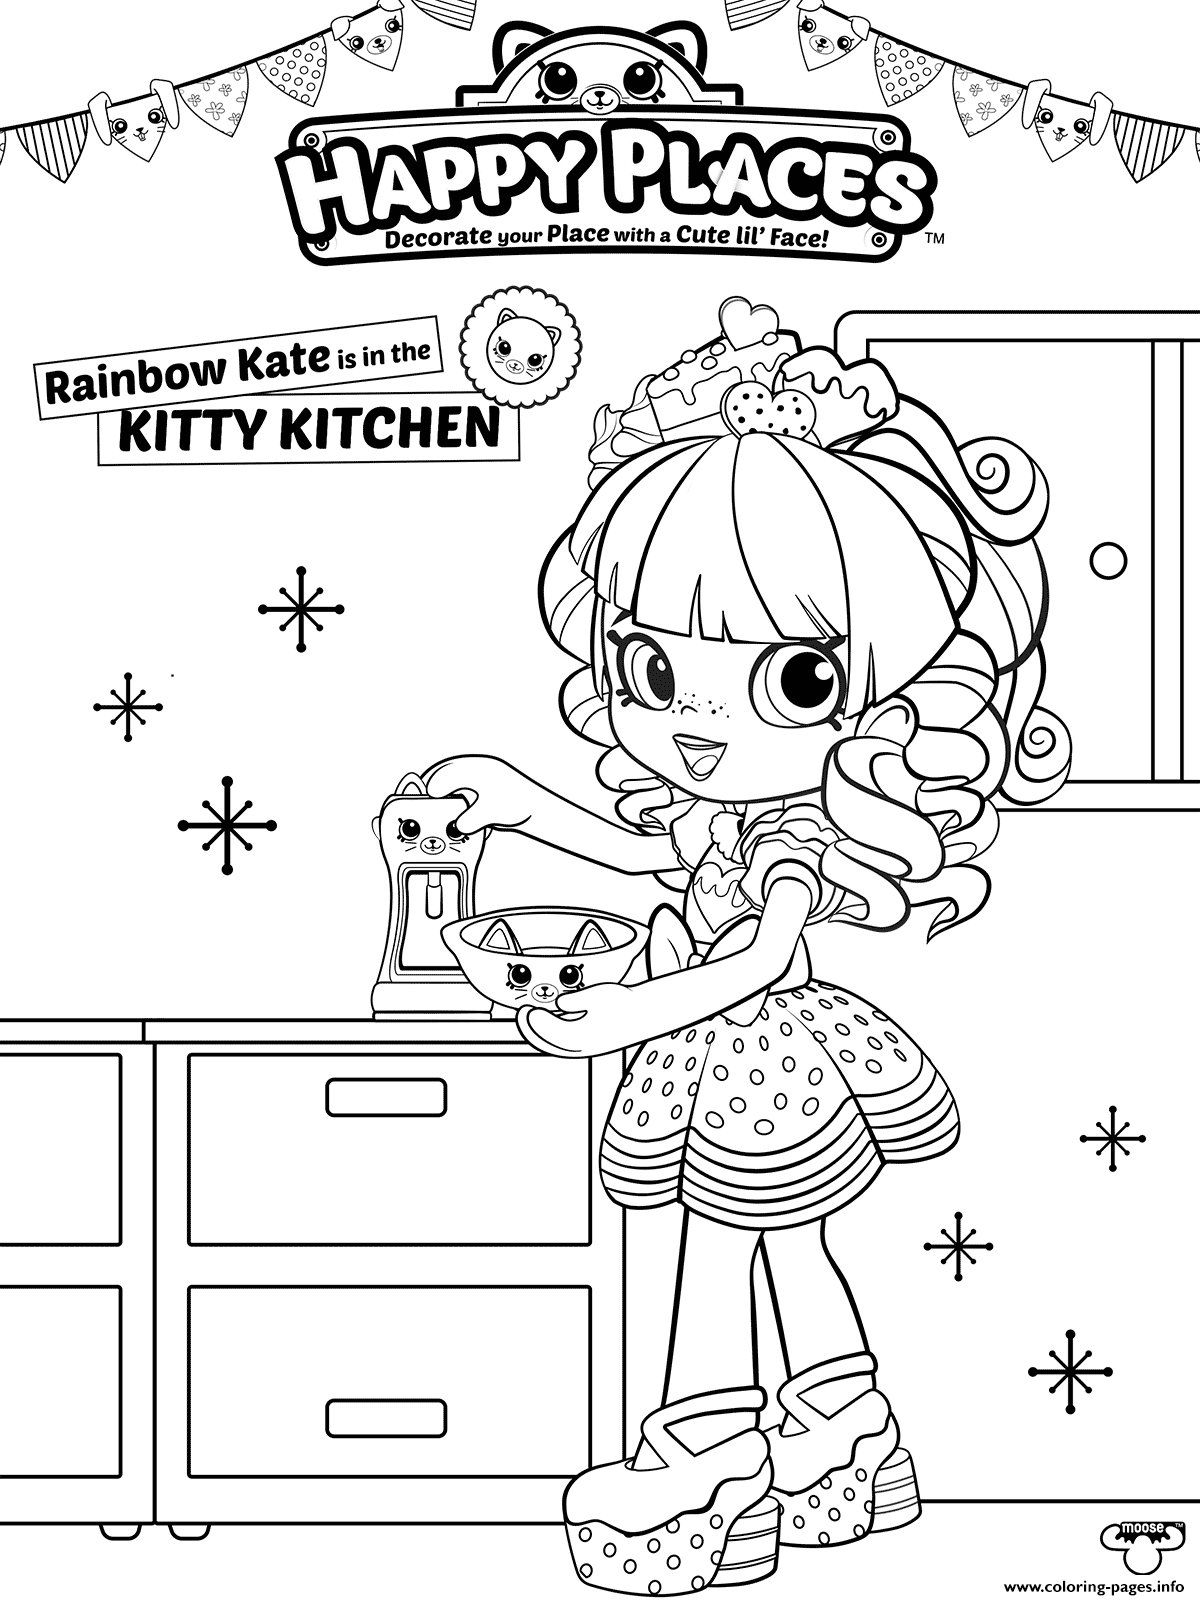 Print Shopkins Happy Places Coloring Pages Halloween Coloring Pages Shopkin Coloring Pages Coloring Books